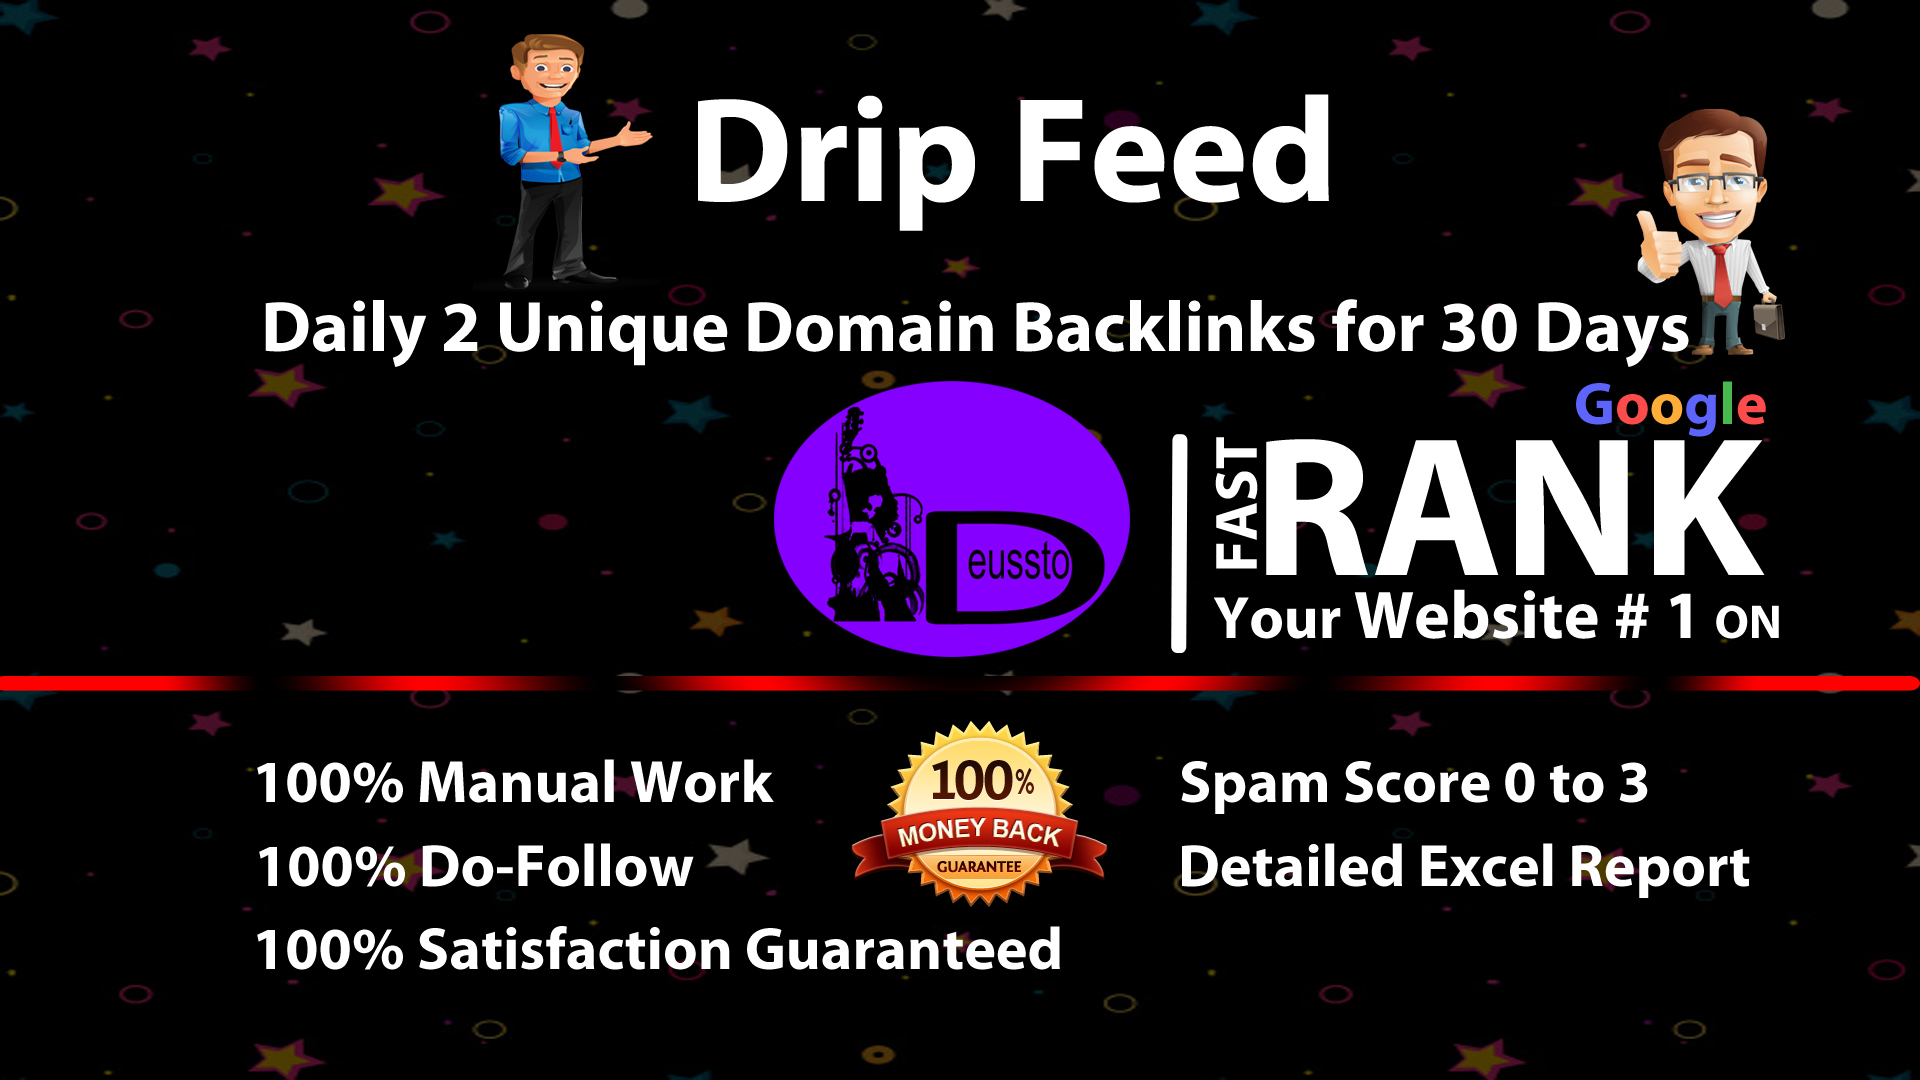 Drip Feed, Daily 2 Unique Domian Backlinks Of Da 20 Plus